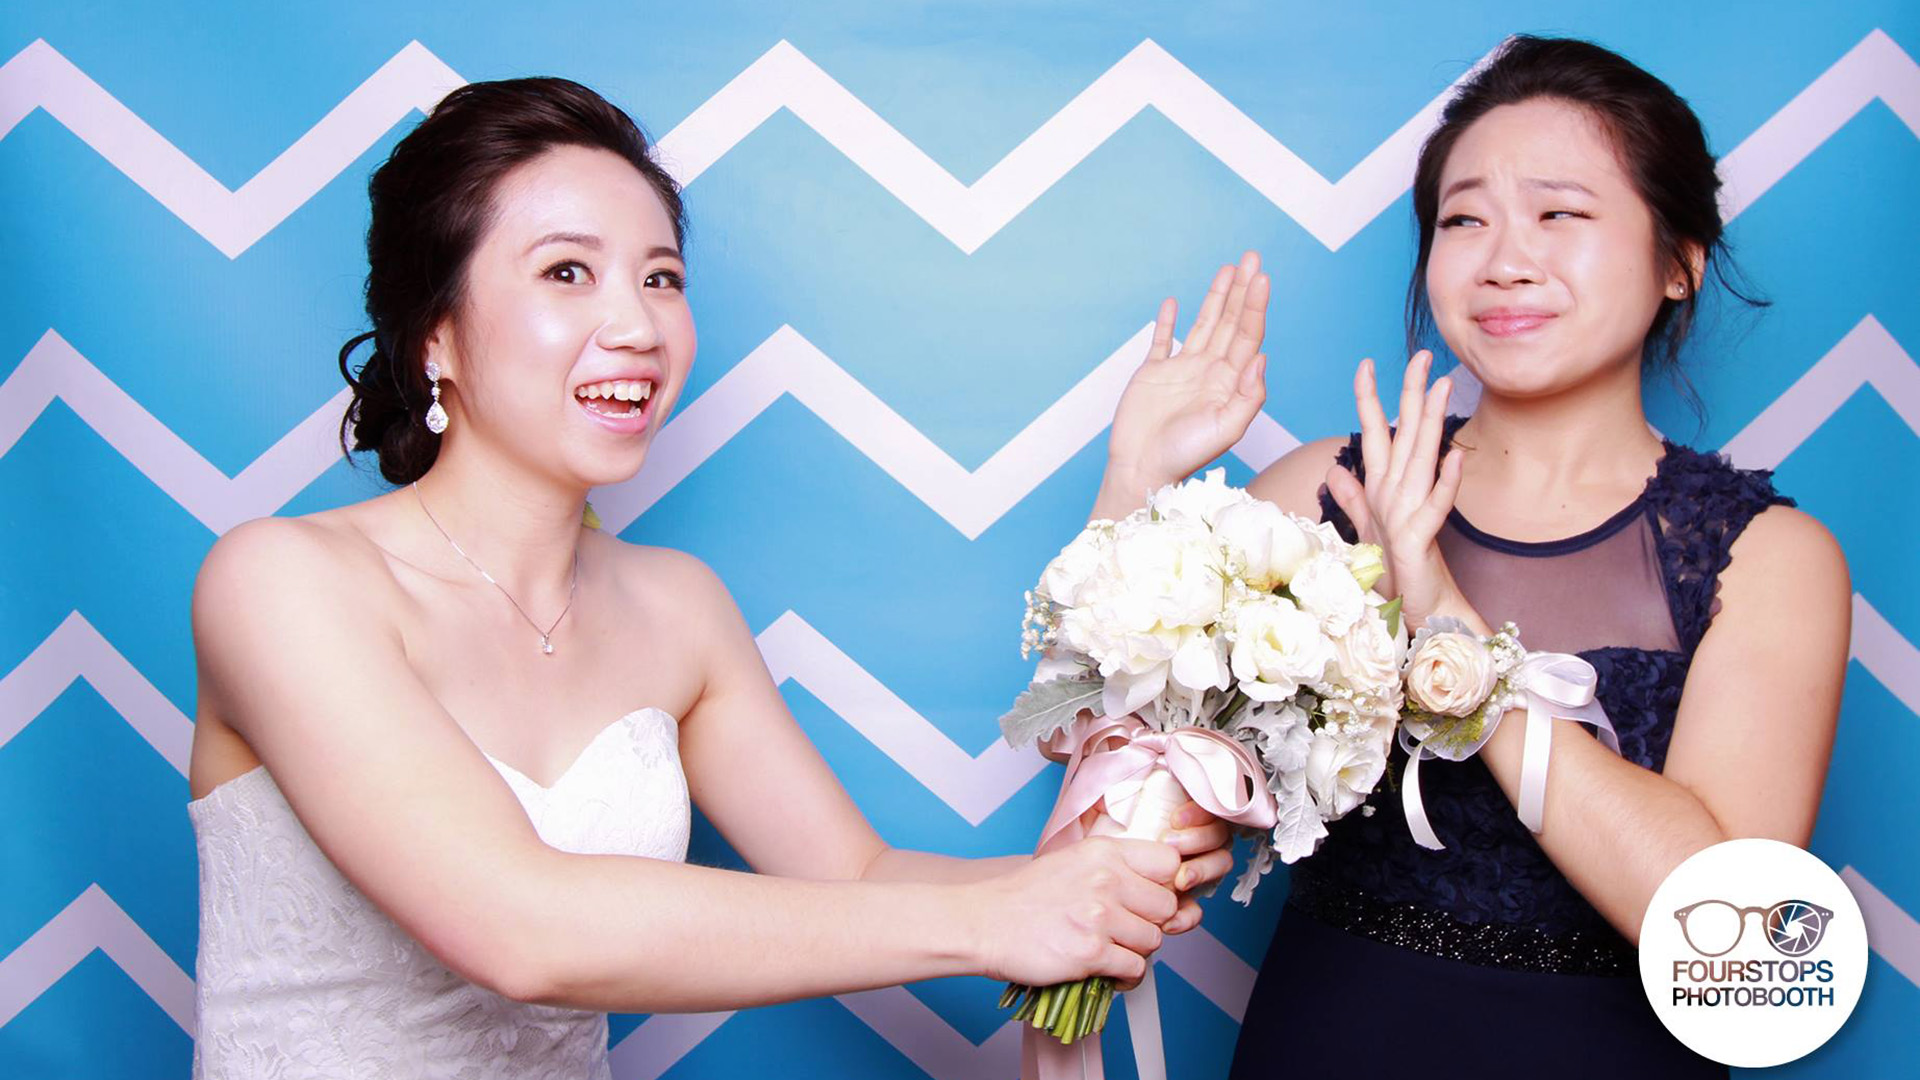 Fourstops • Singapore Photobooth • Yi Chieh & Michelle Wedding 2015 Cover